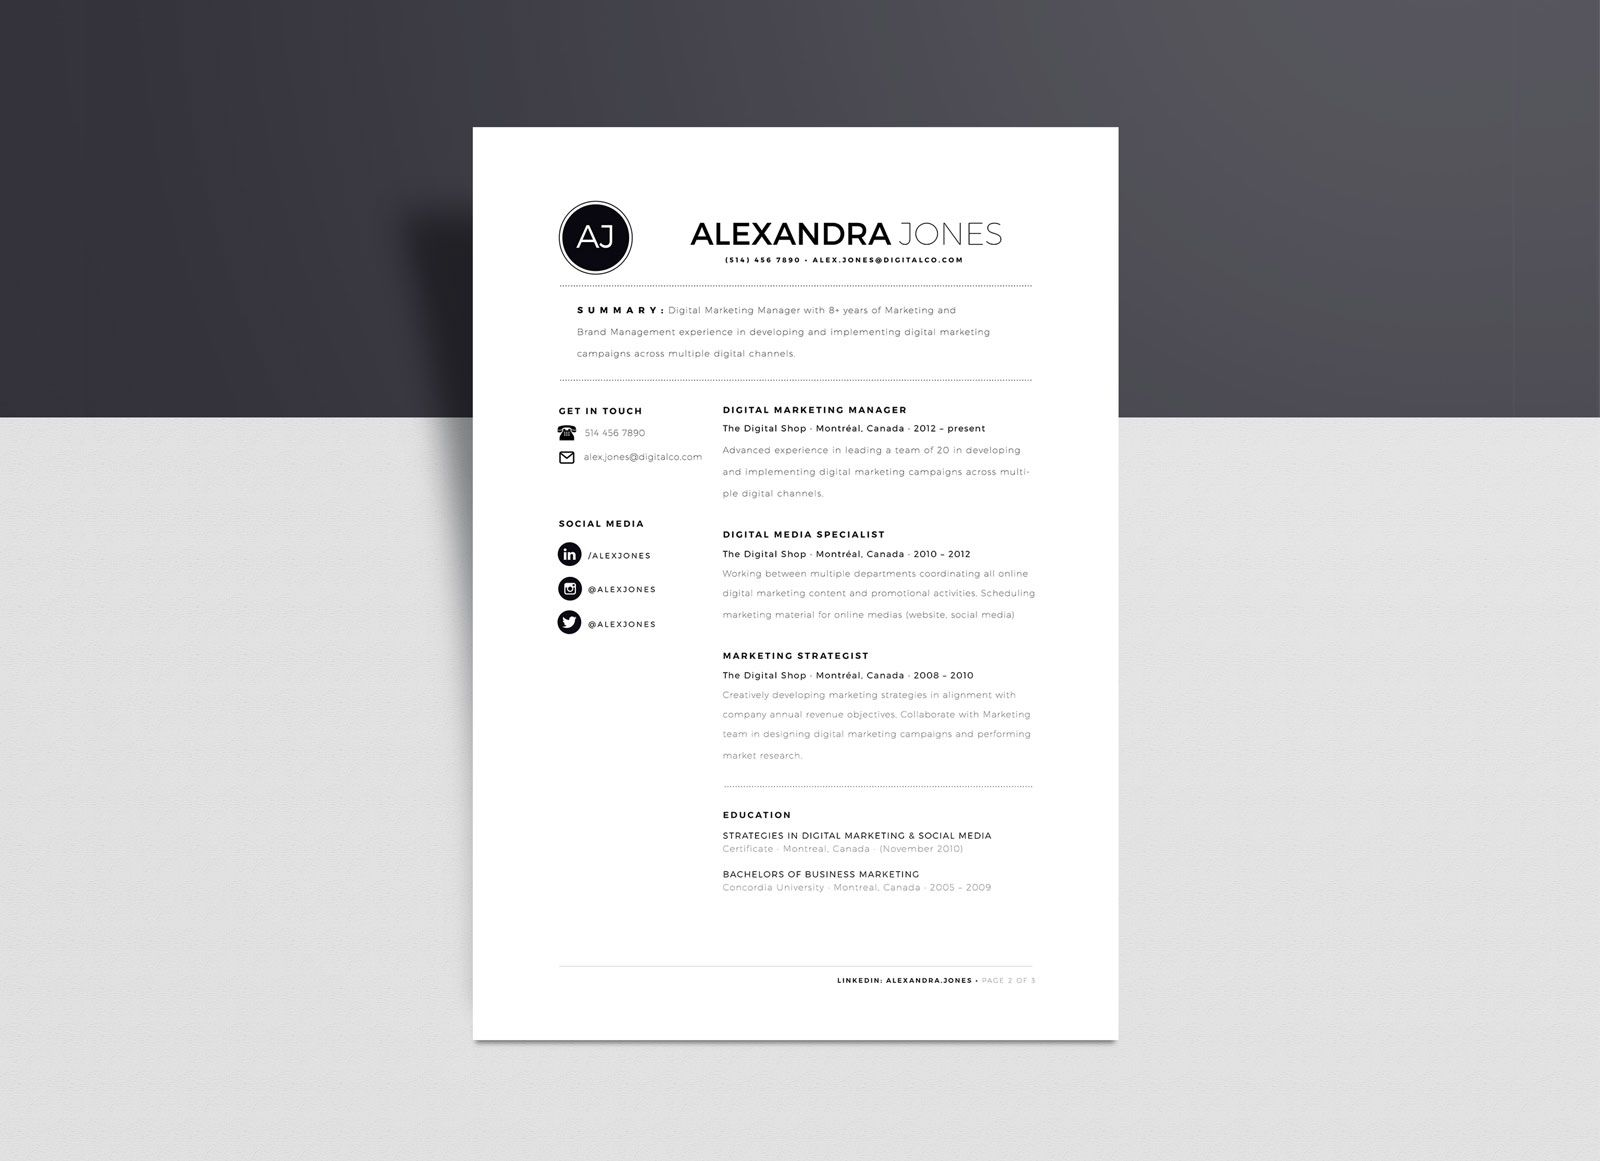 003 Stunning Resume Template Free Word Highest Clarity  Download Cv 2020 FormatFull